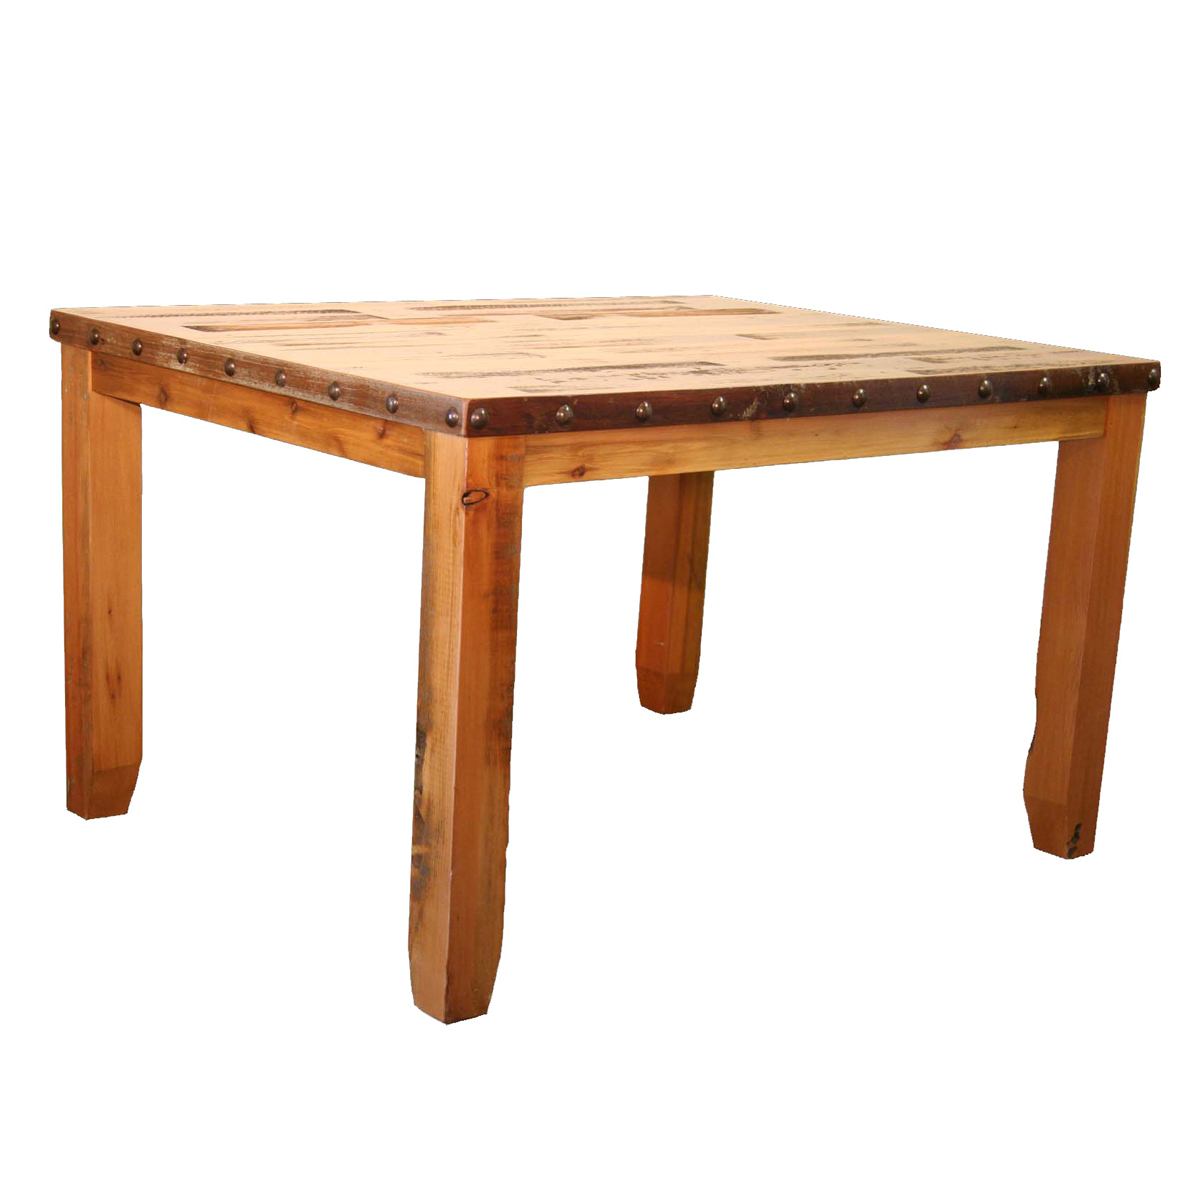 Black Forest Decor Barnwood dining table - 36 x 36